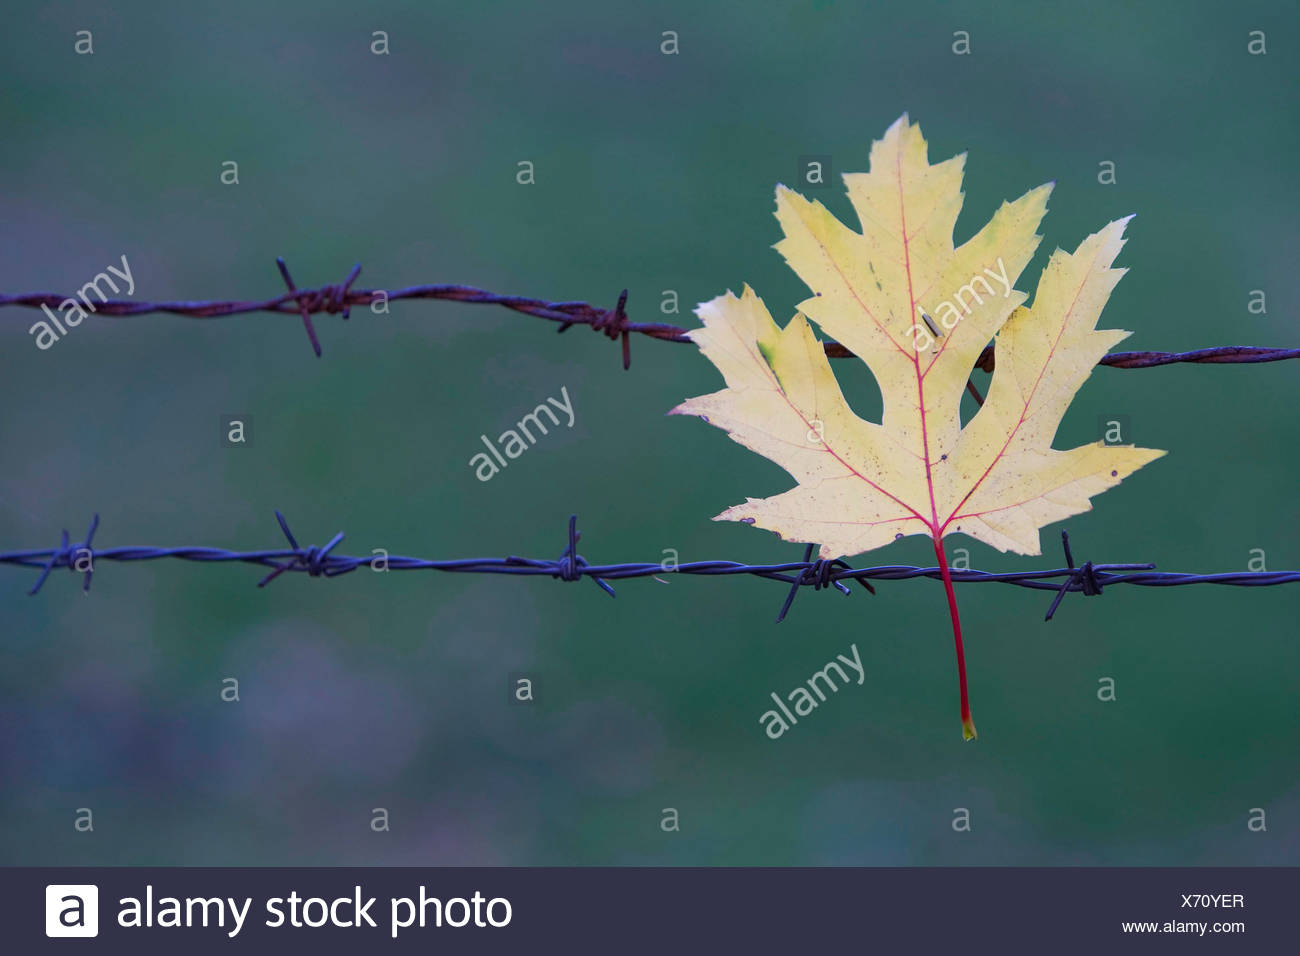 Maple leaf caught on a barbed wire fence. - Stock Image